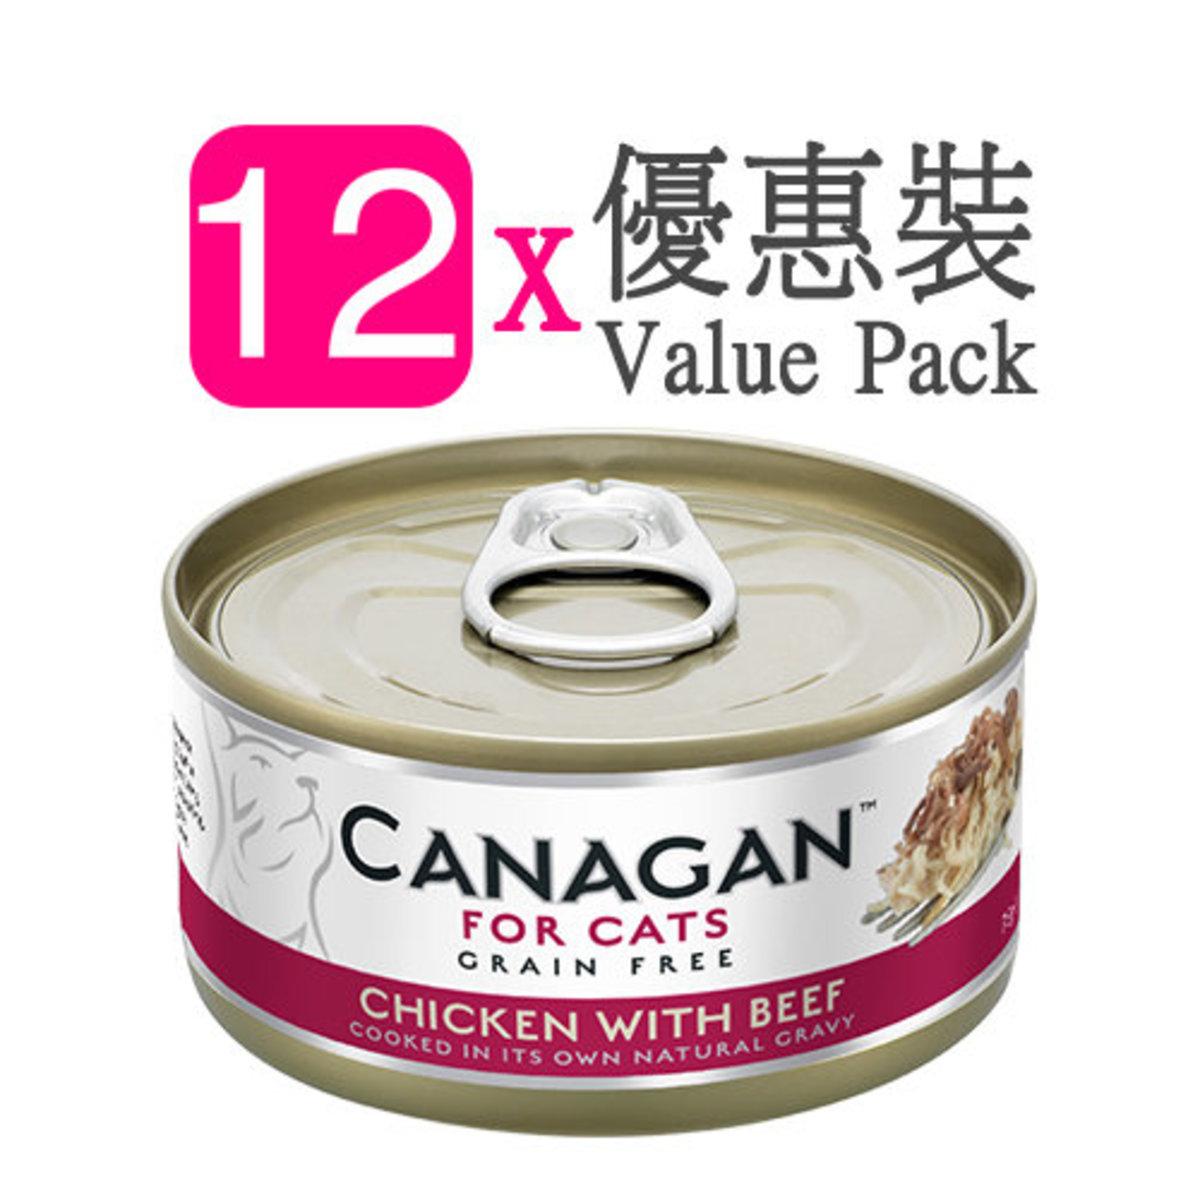 Chicken with Beef for Cats (75g x 12 Cans) #WE75_12